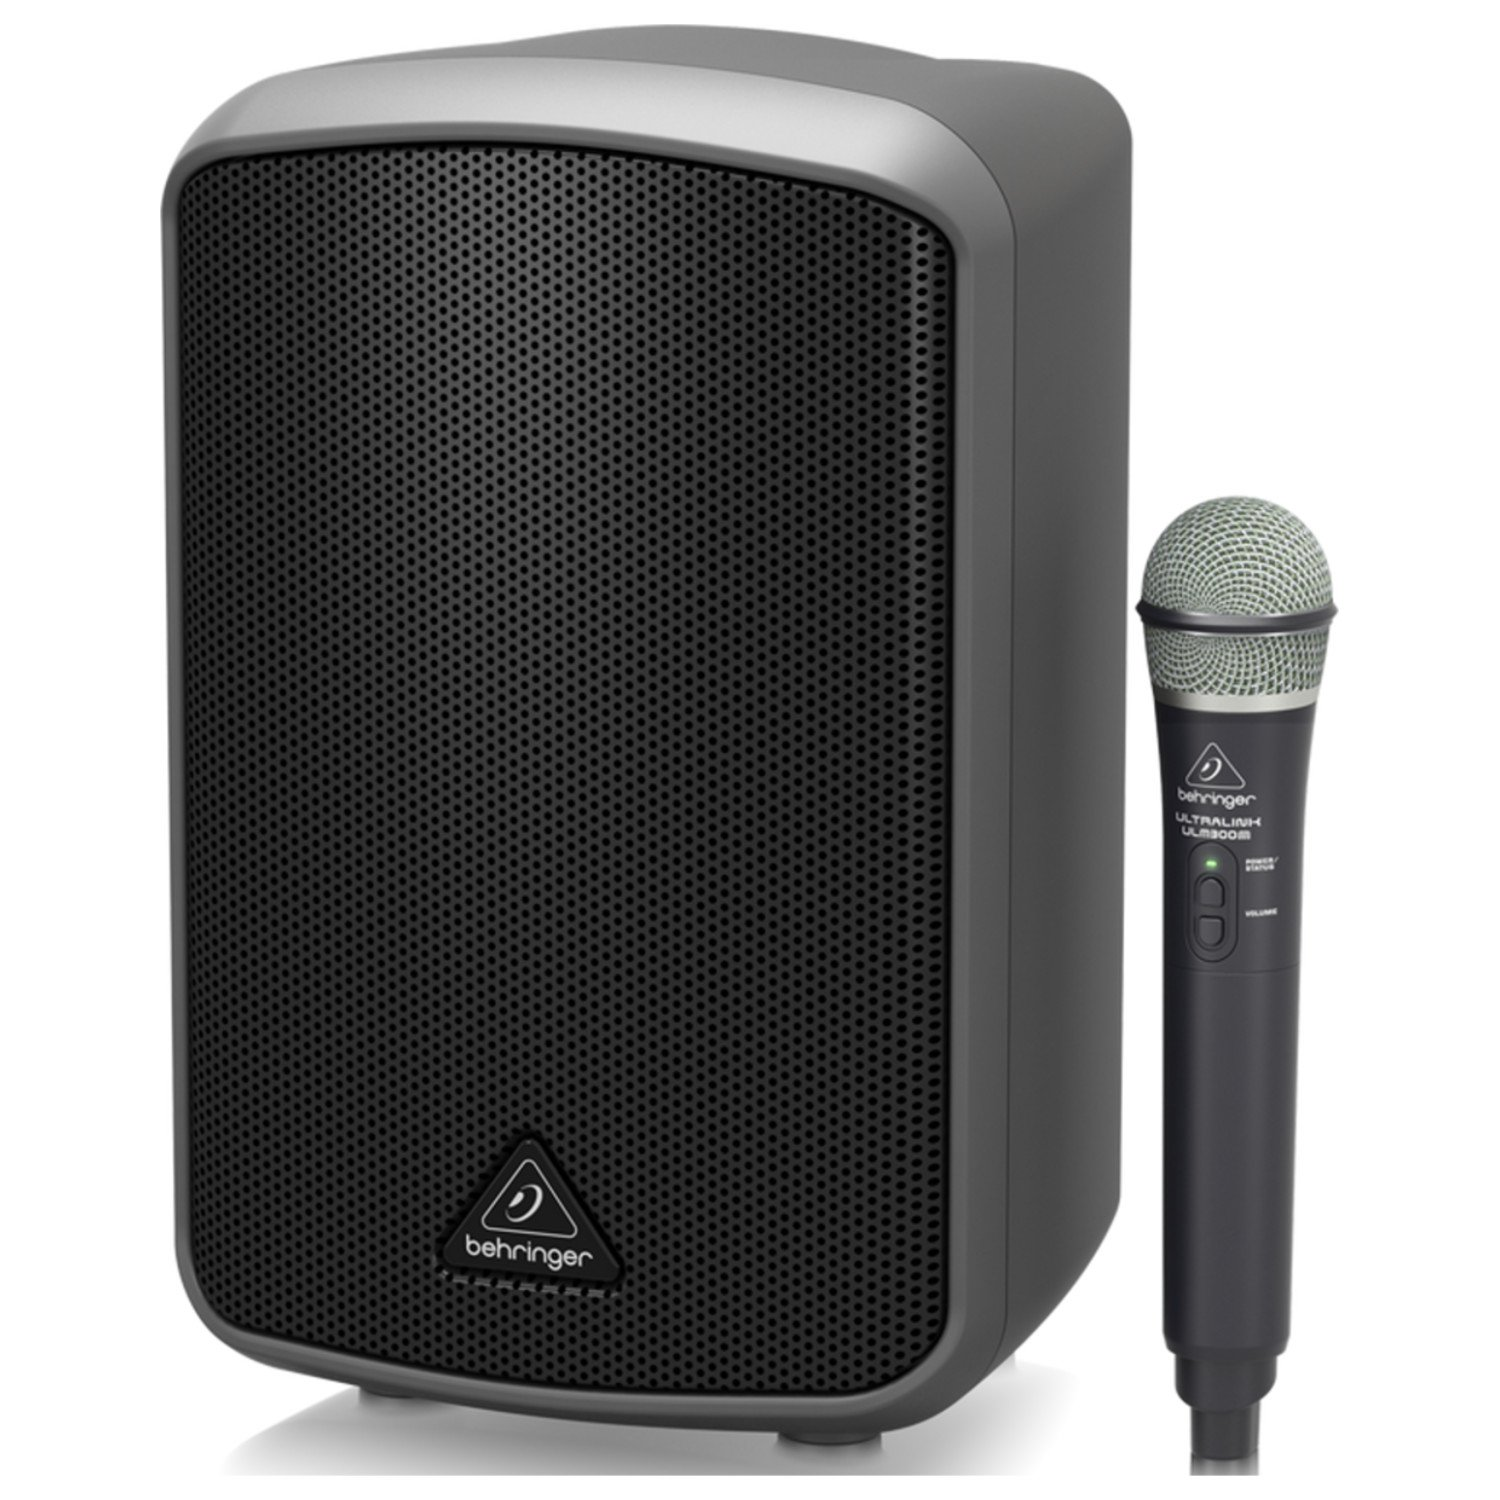 Behringer Portable 100-Watt Speaker with Wireless Microphone, Bluetooth Connectivity and Battery Operation